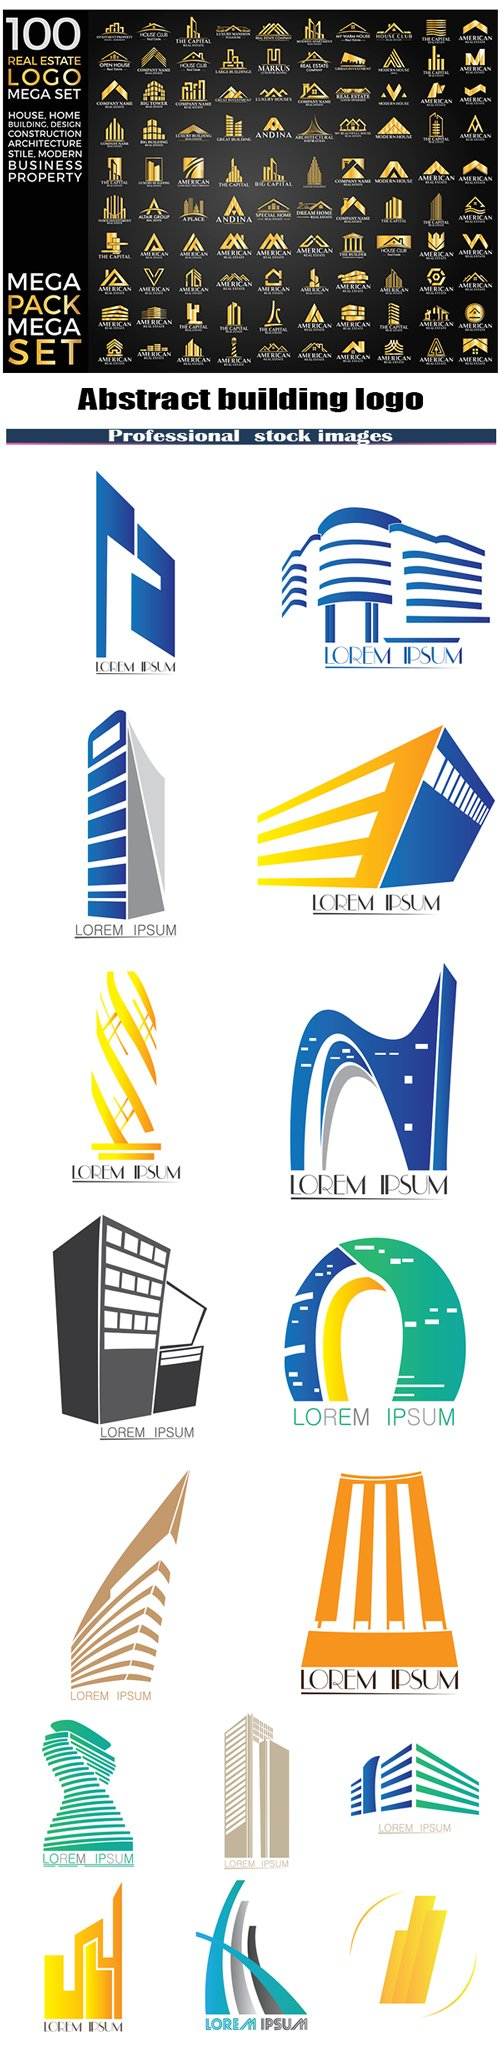 Abstract building logo